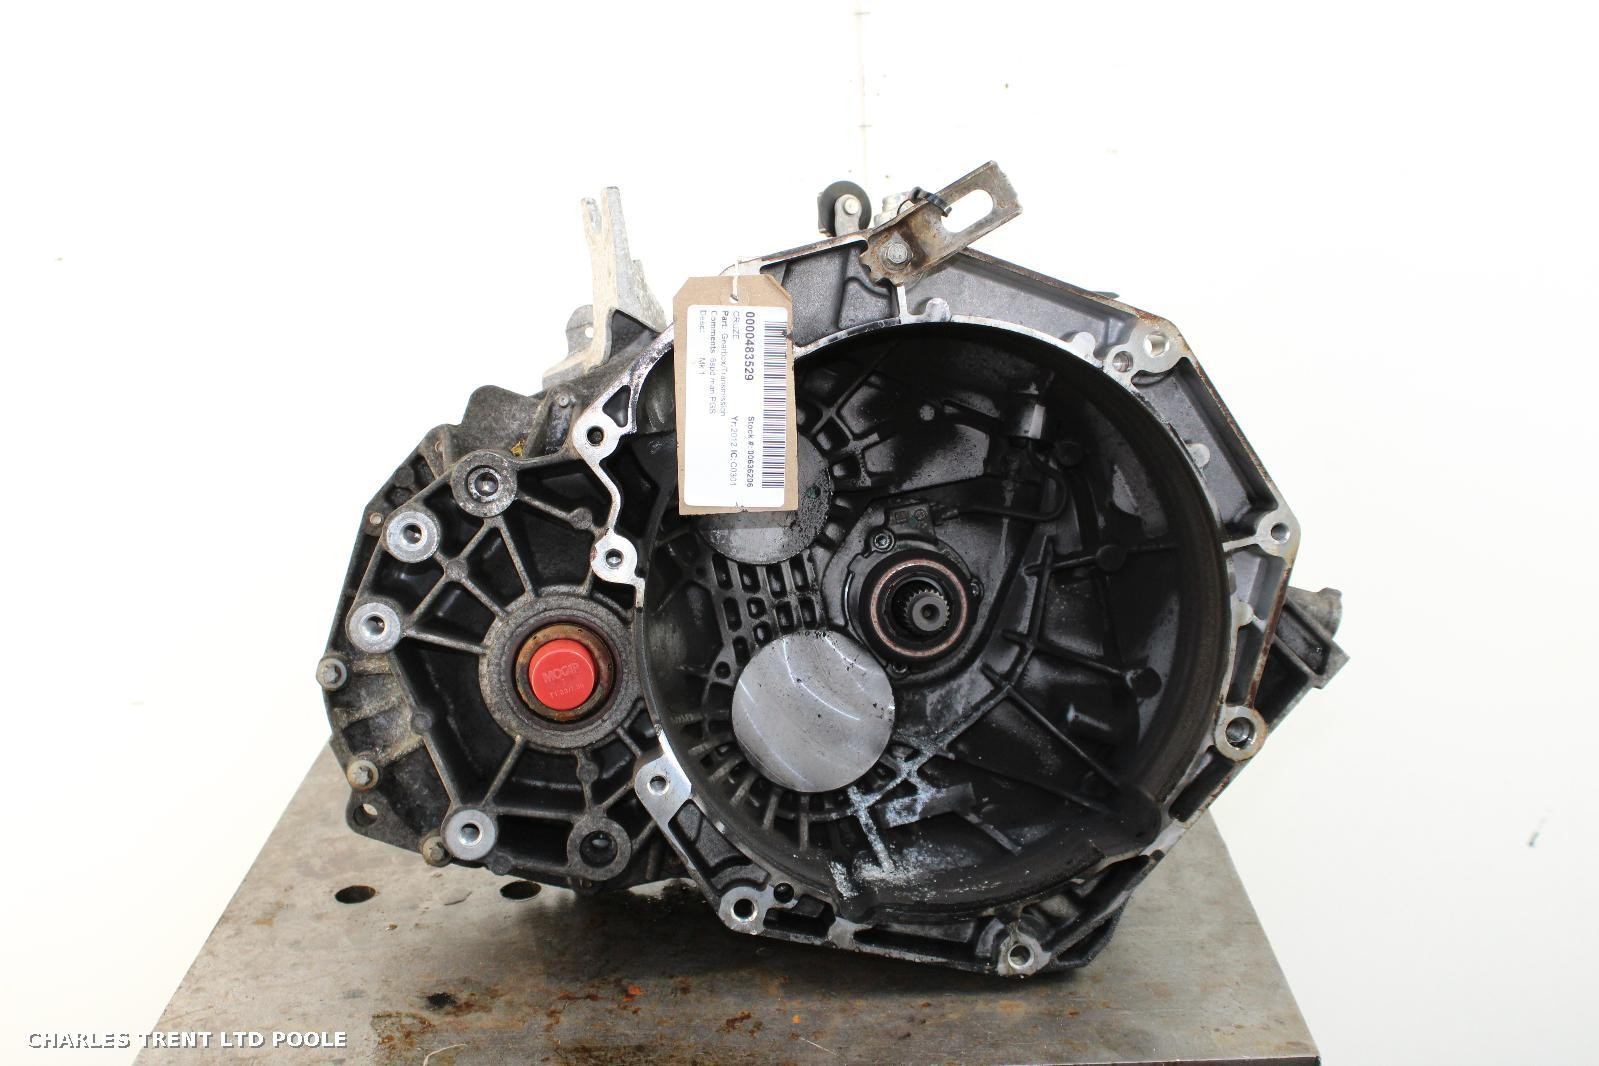 2012 - CHEVROLET - CRUZE - GEARBOXES / TRANSMISSIONS